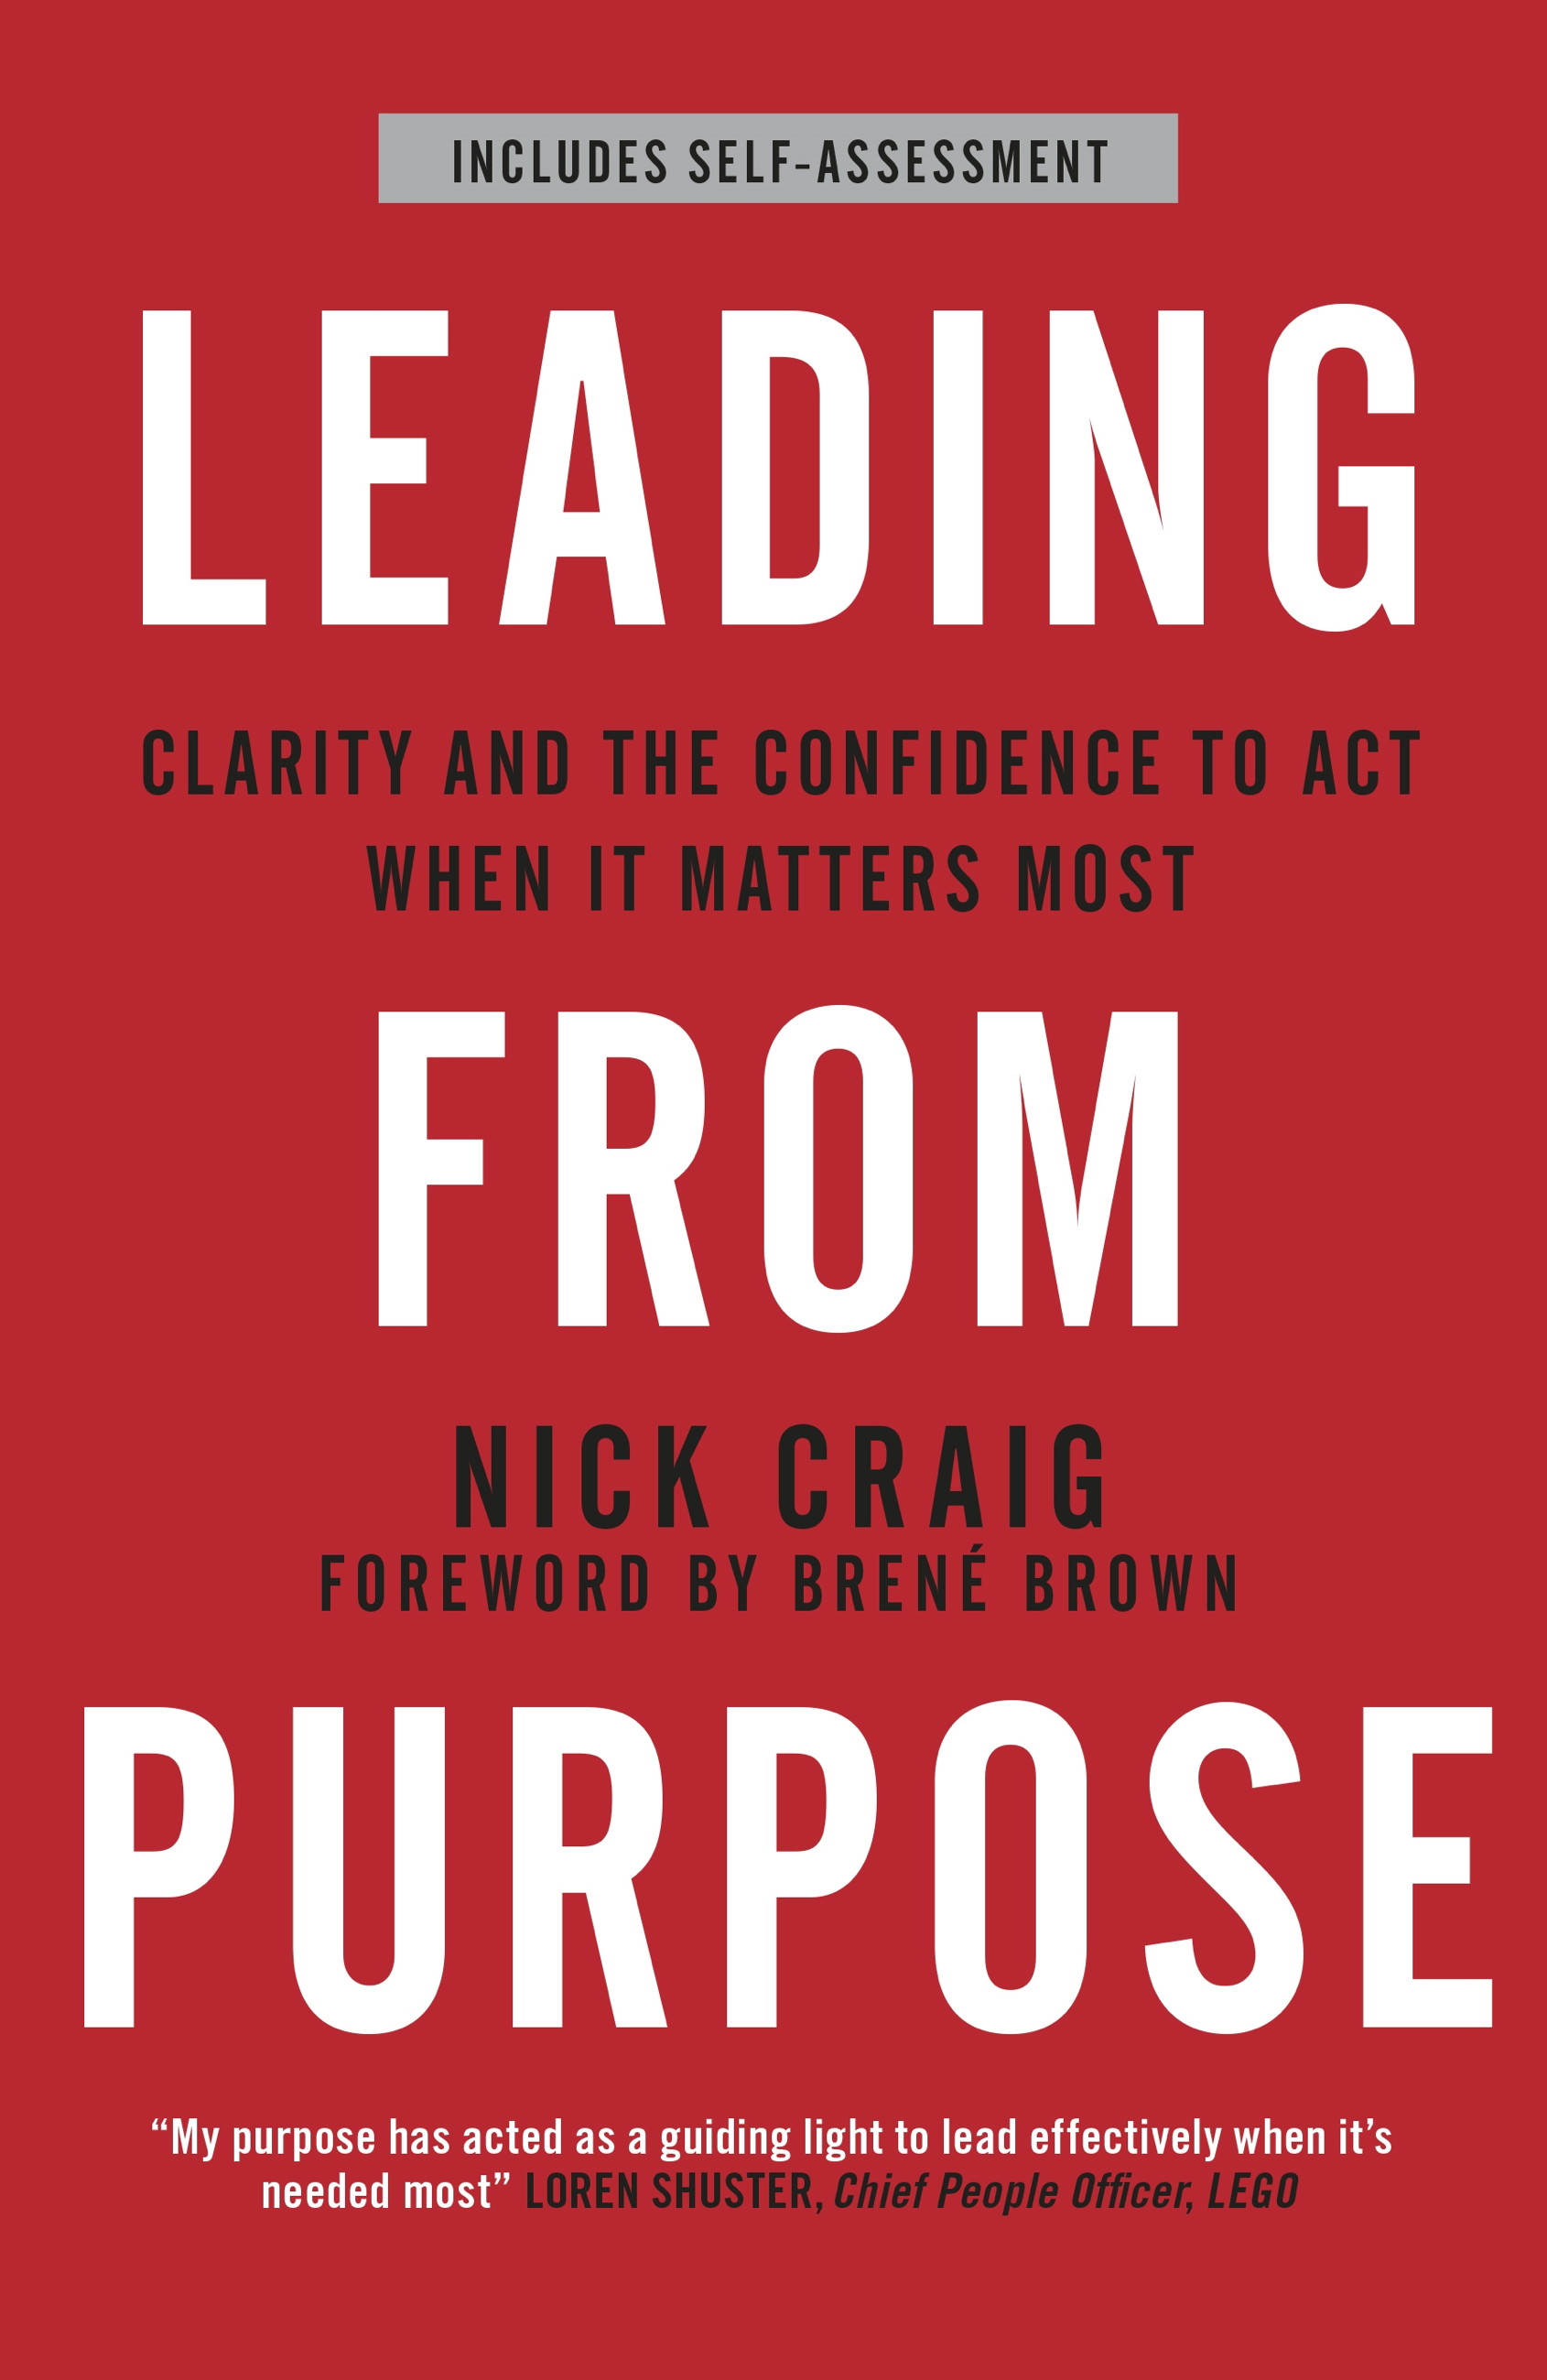 Download Ebook Leading from Purpose by Nick Craig Pdf